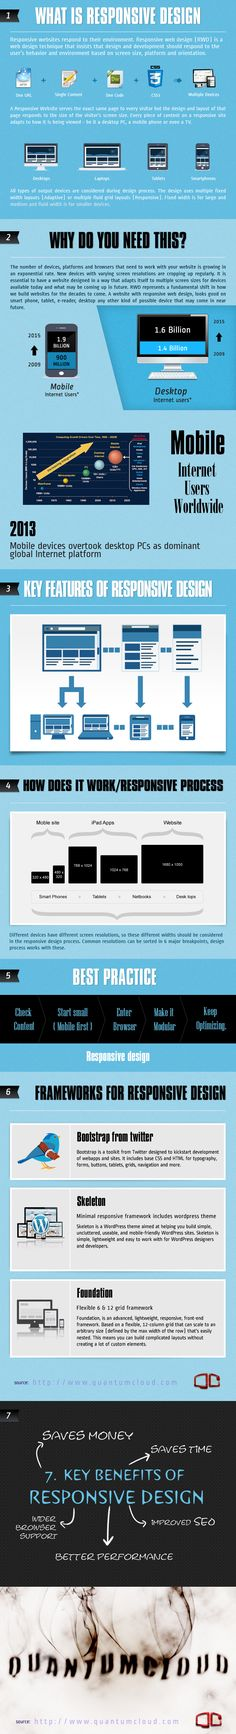 What is Responsive Web Design?   #infographic #WebDesign #RWD